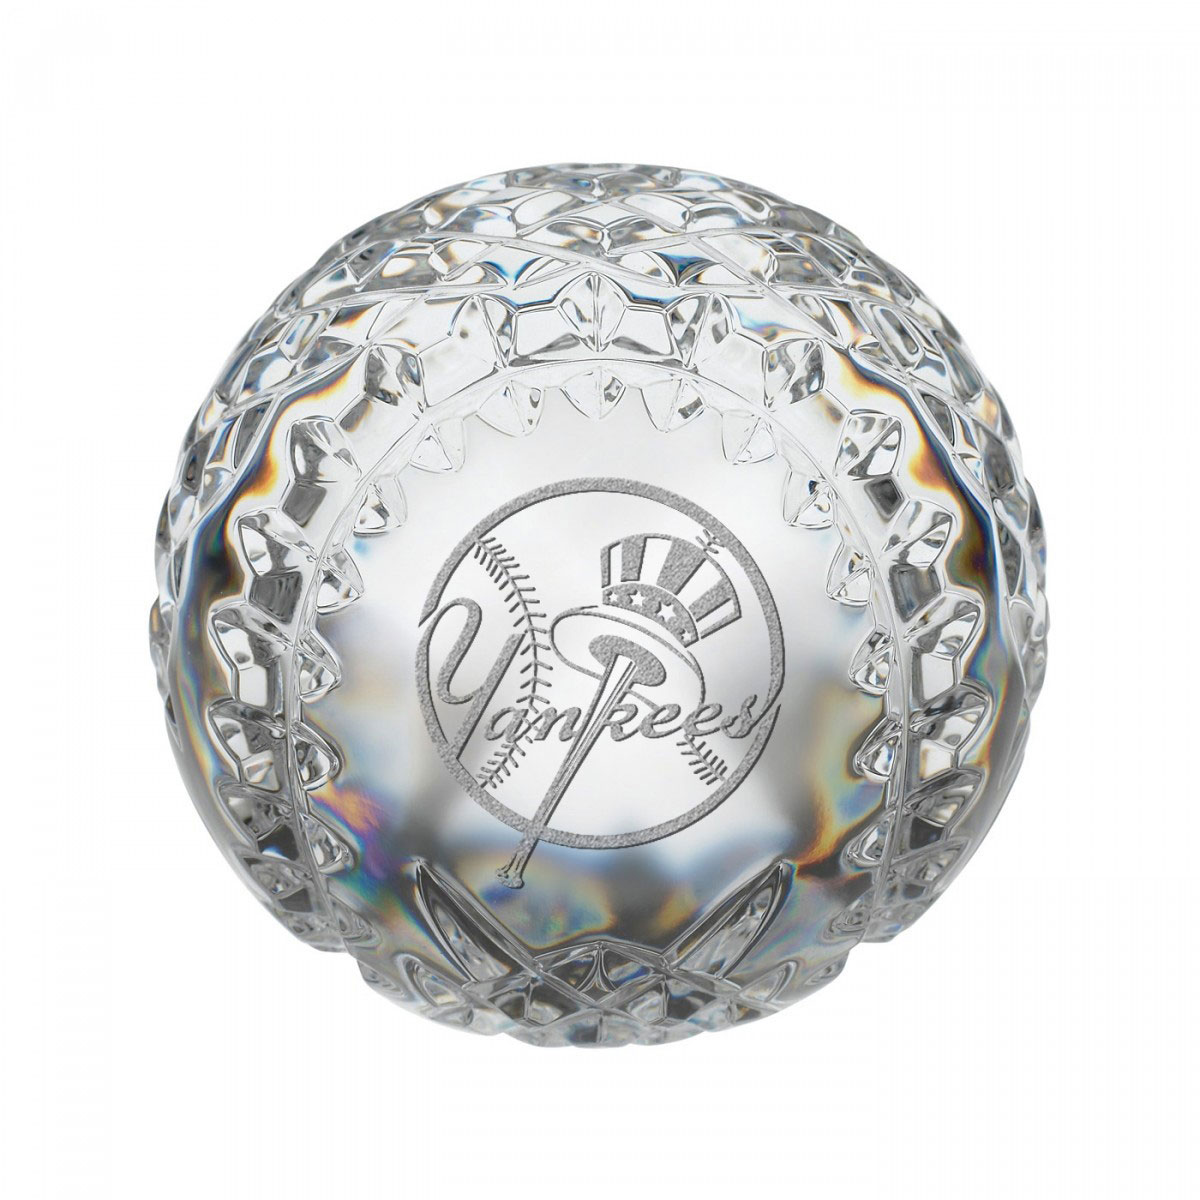 Waterford MLB New York Yankees Crystal Baseball Paperweight